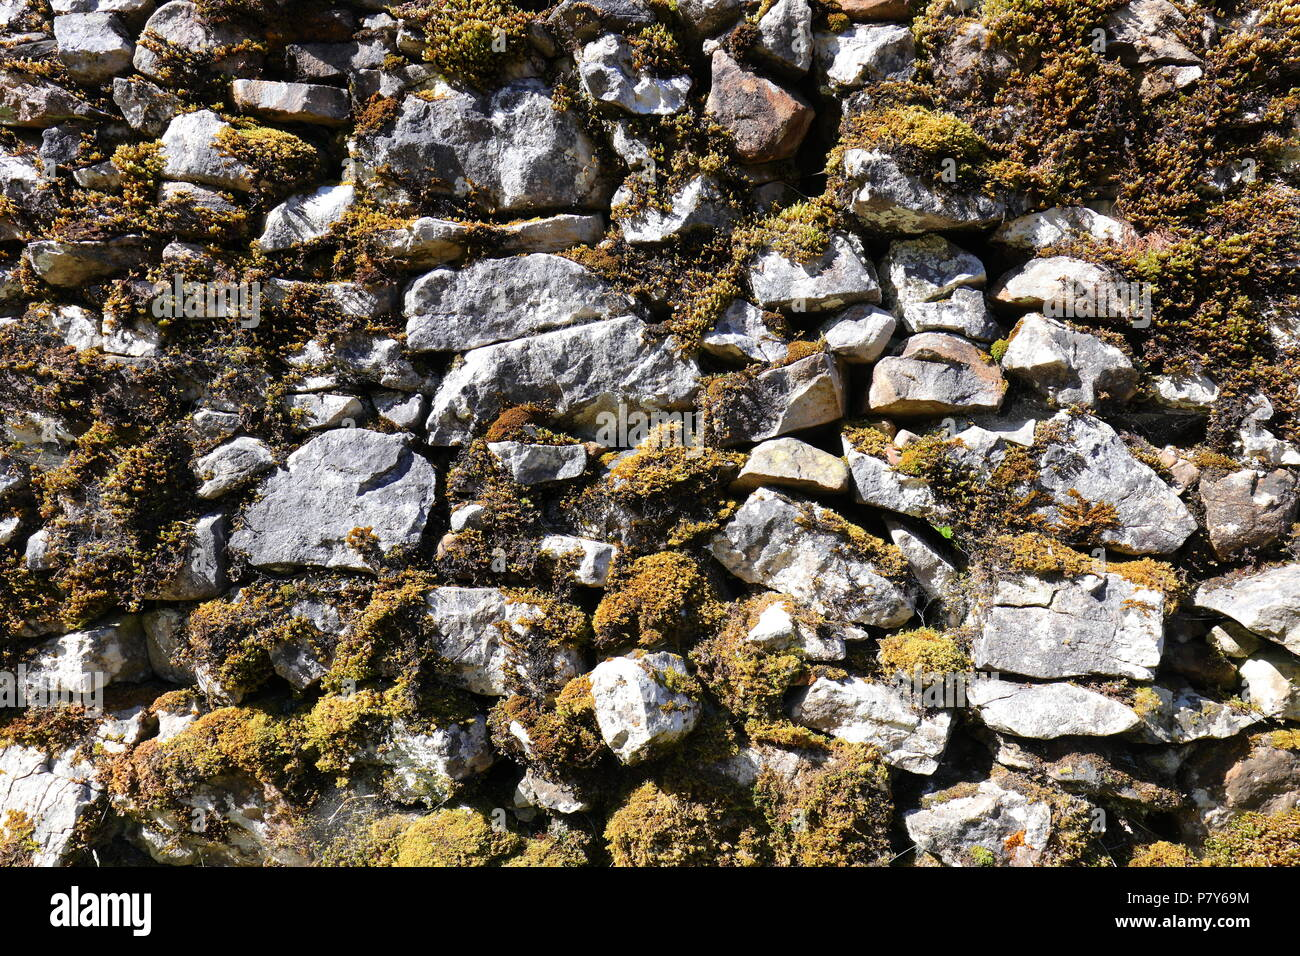 A lichen covered dry stone wall at Trow Gill Gorge at the foot of Ingleborough Mountain & one of the Three Peaks Challenge routes to the summit. - Stock Image